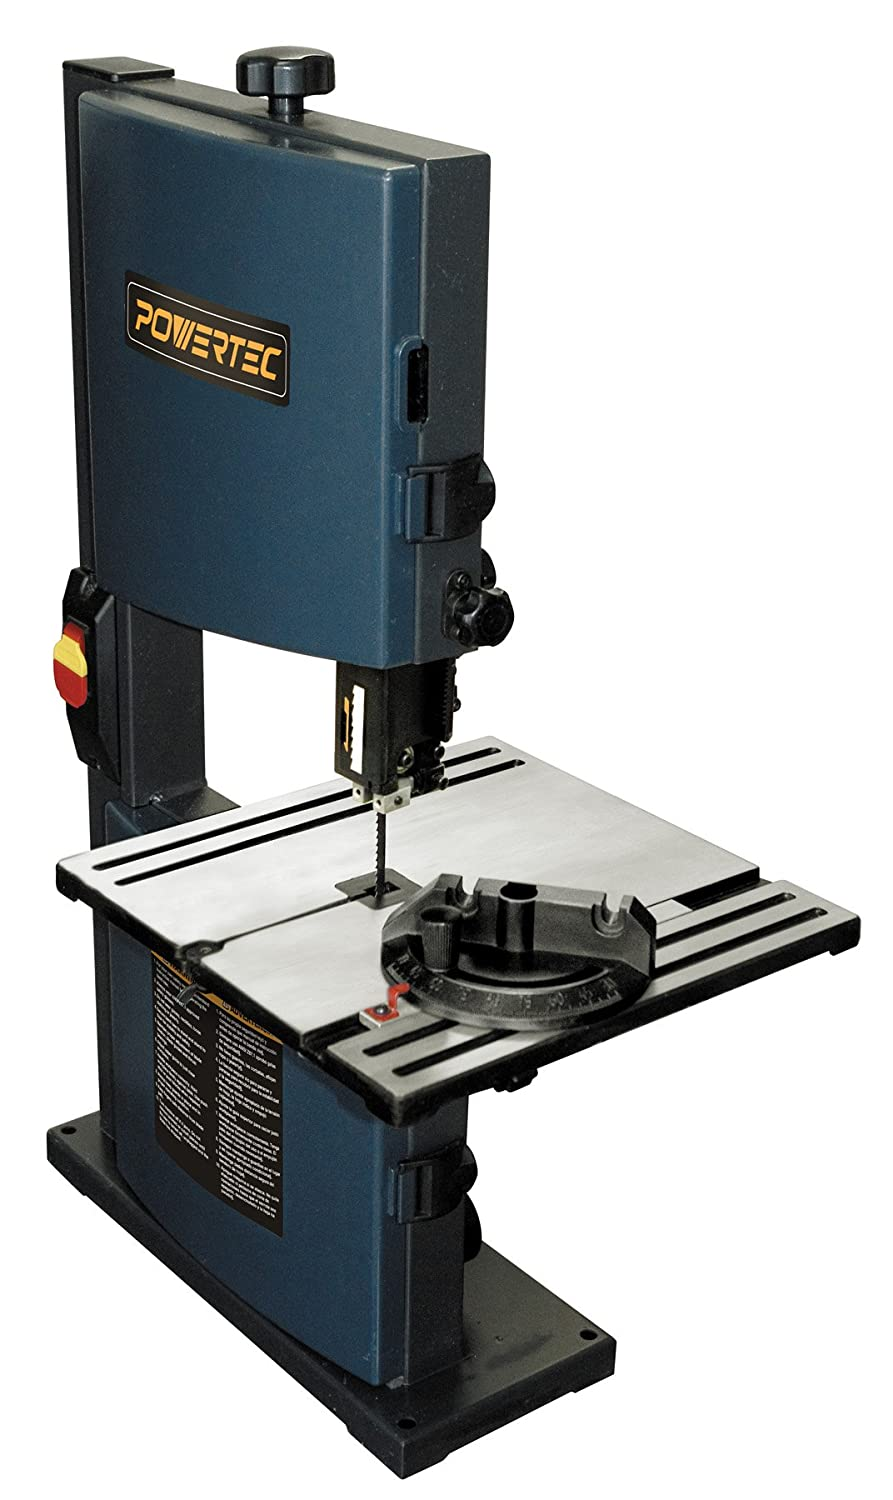 Top 5 Best Benchtop Bandsaw Reviews 2017 Updated